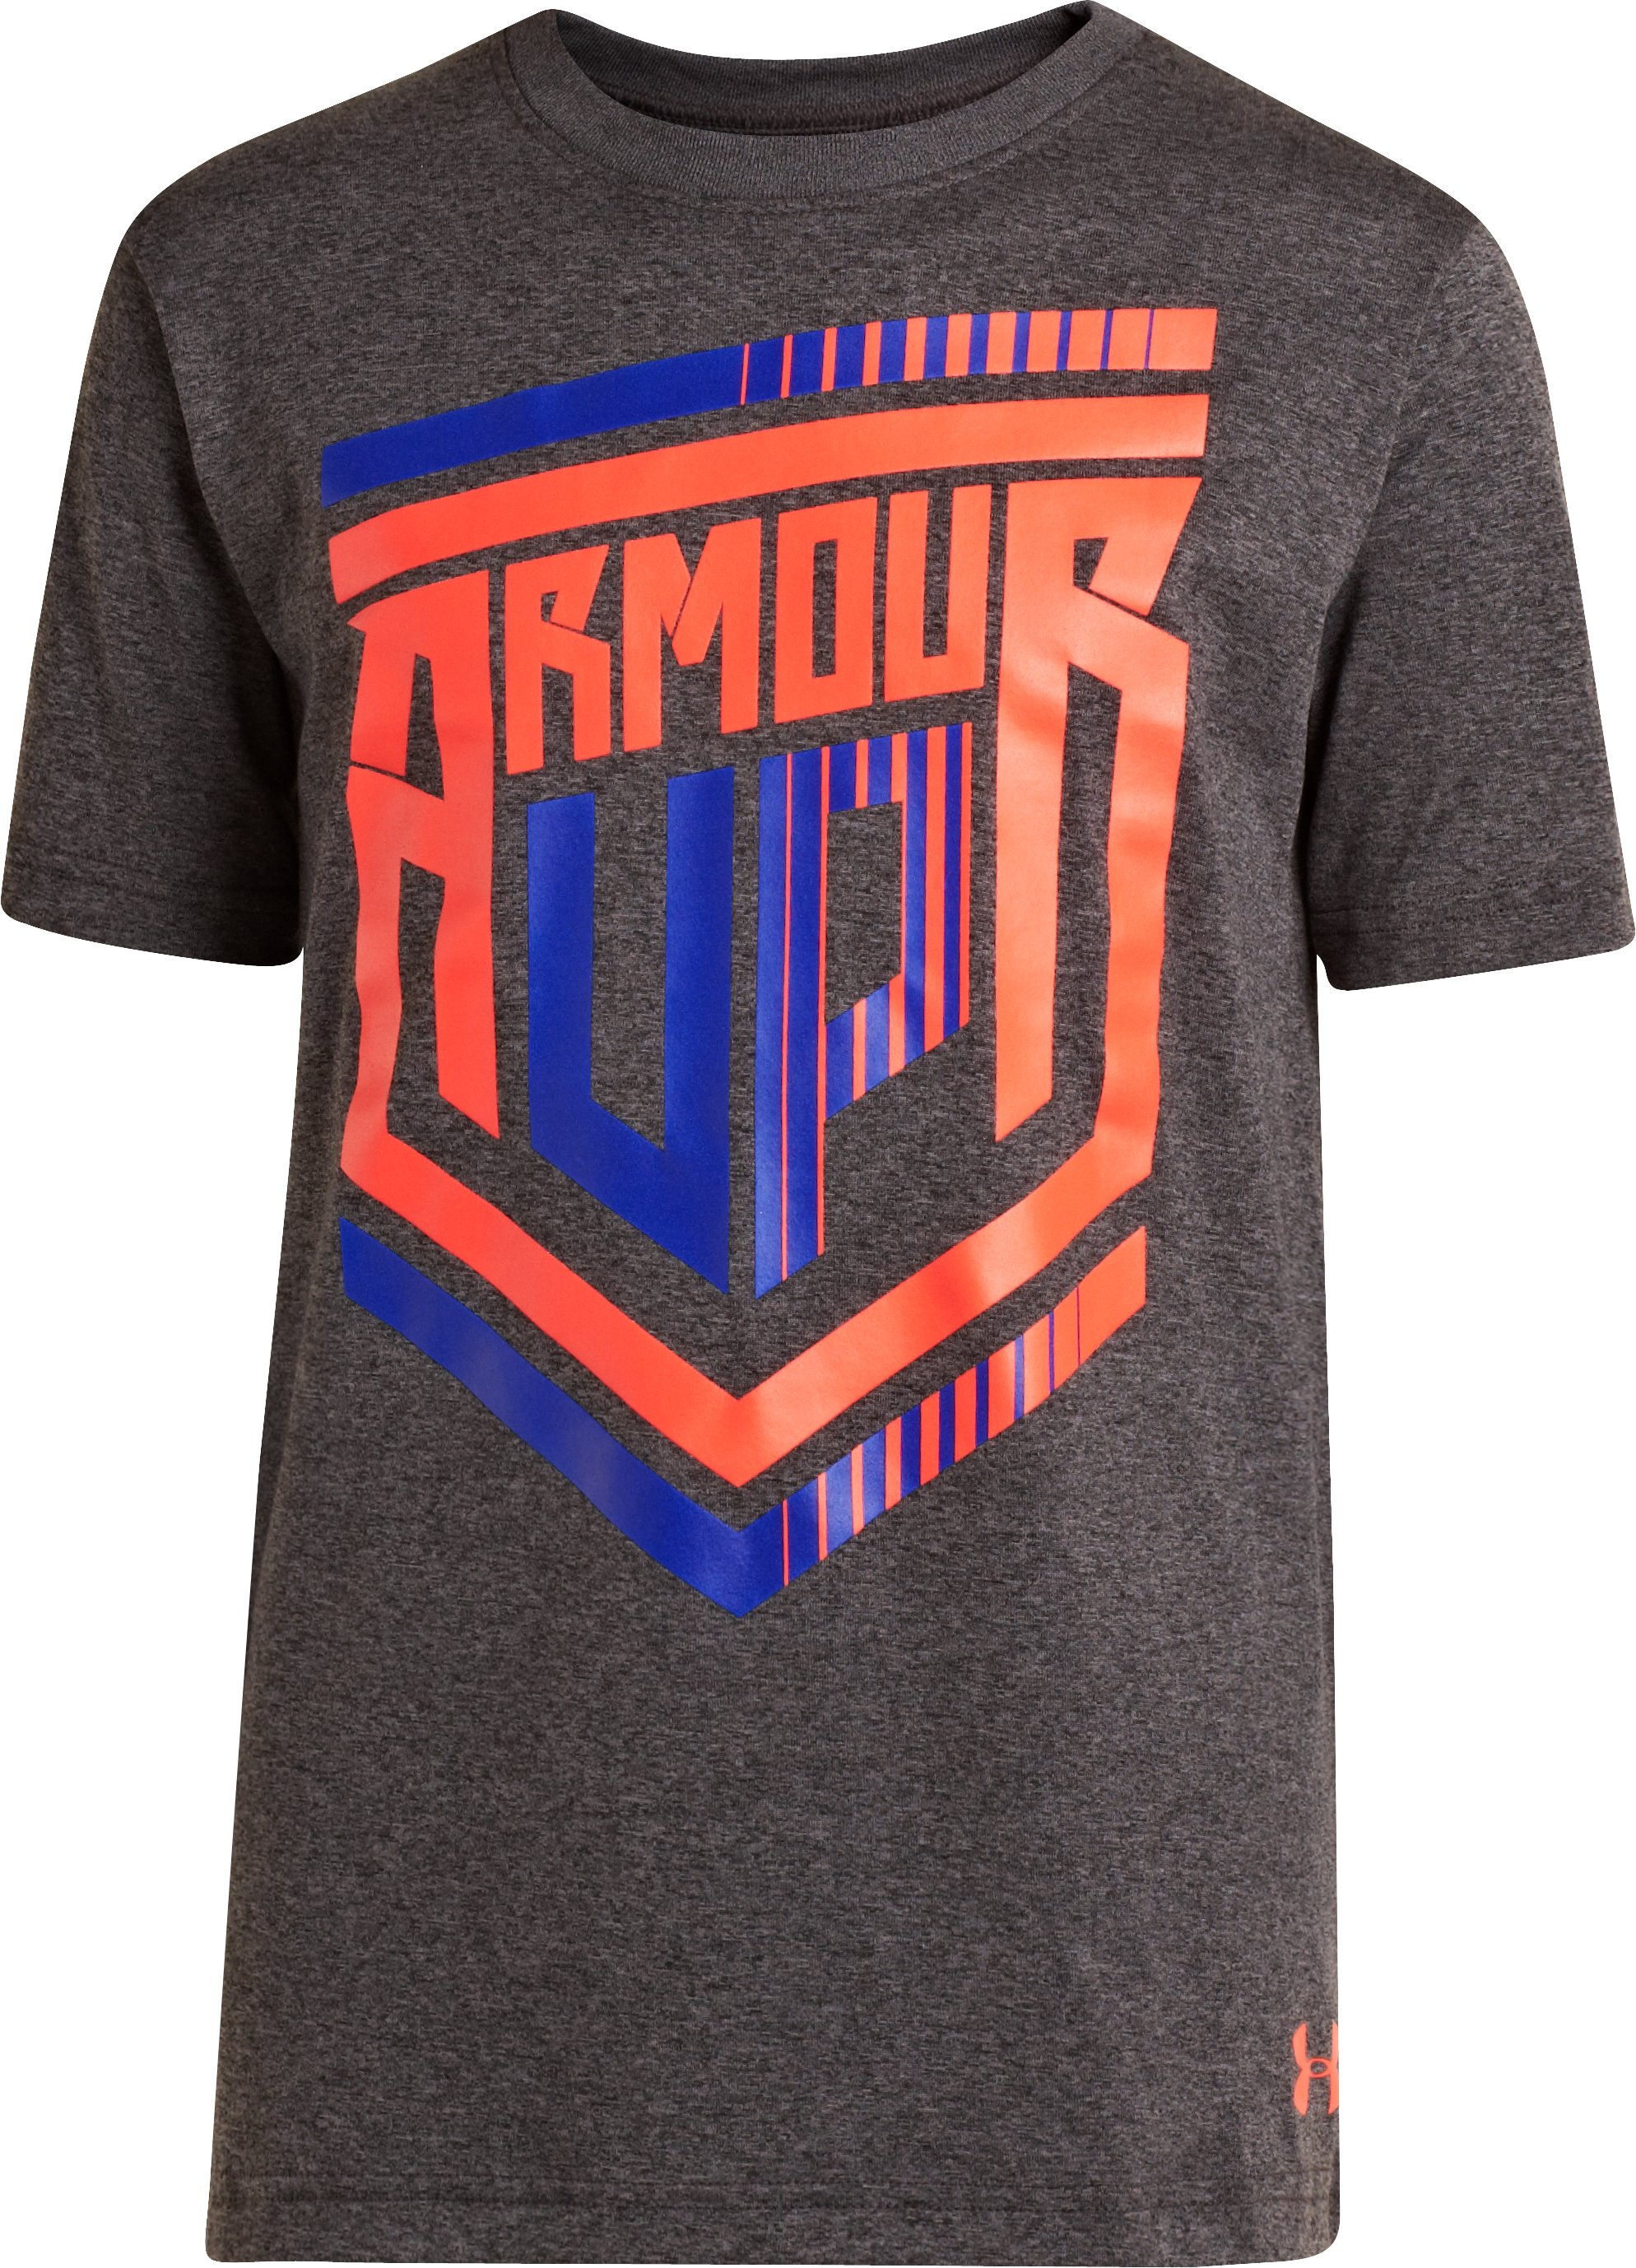 Boys' Armour Up® T-Shirt, Carbon Heather